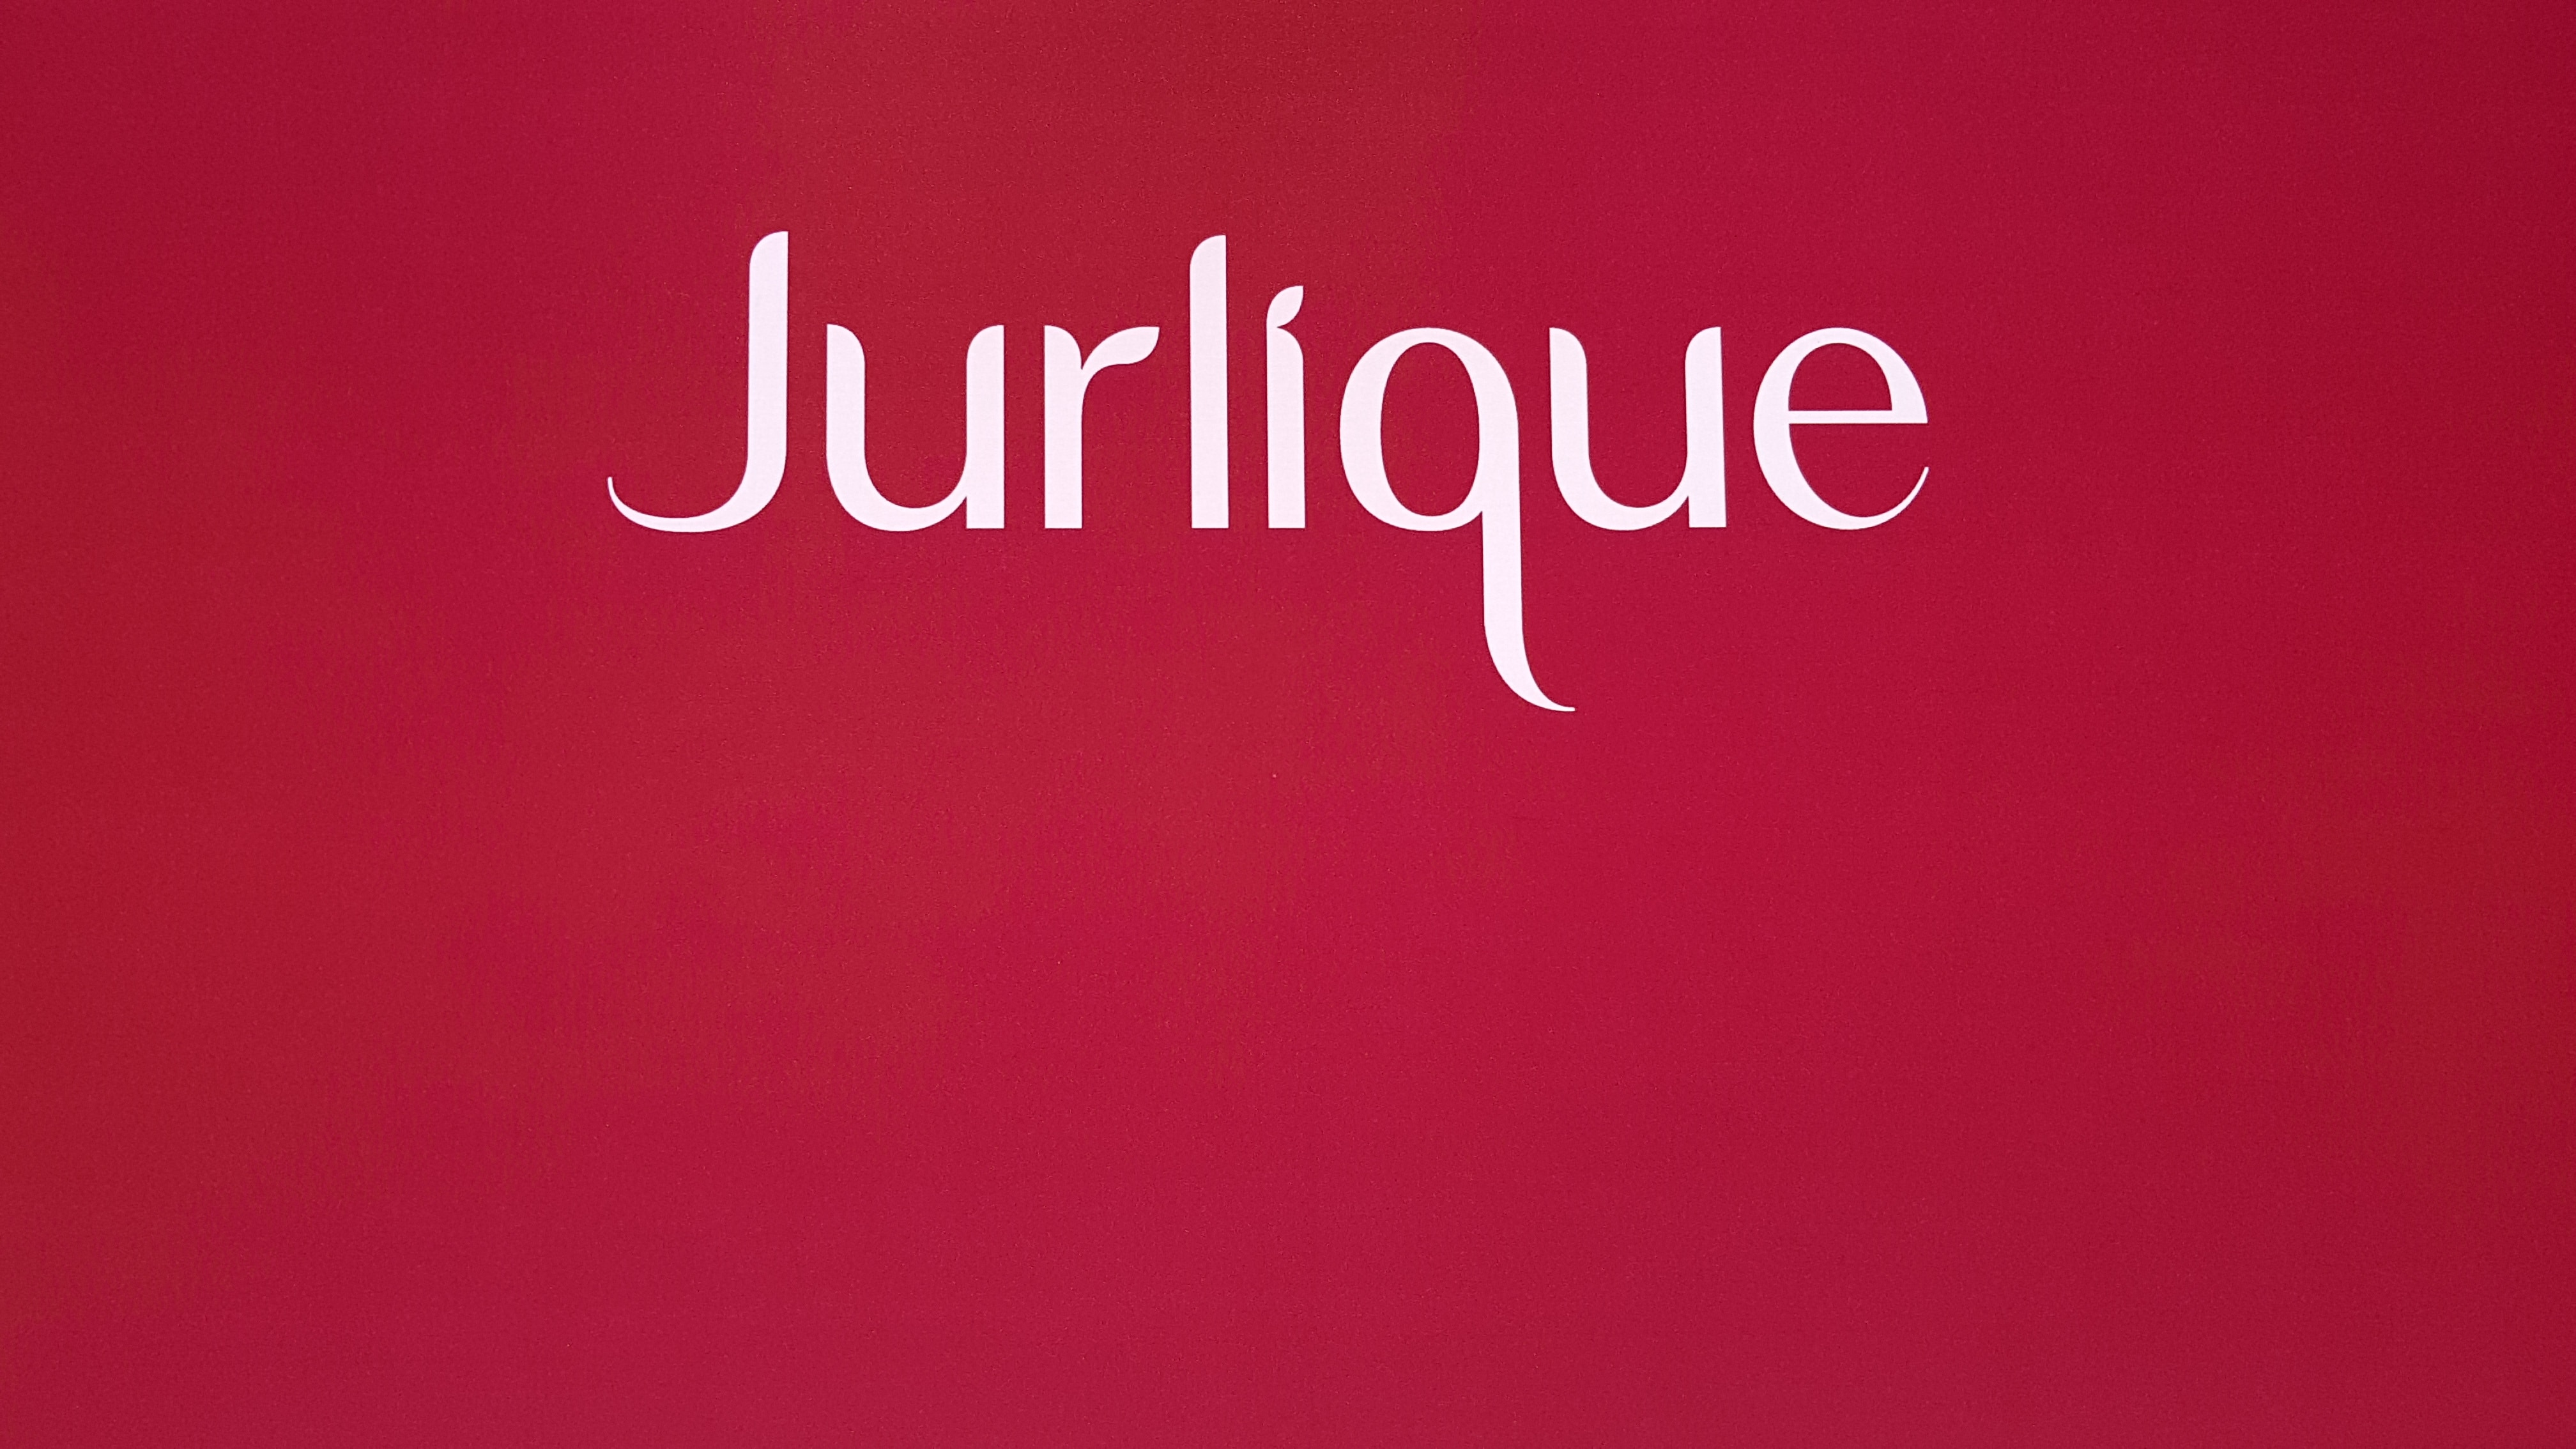 Jurlique / Vogue Styling Sessions